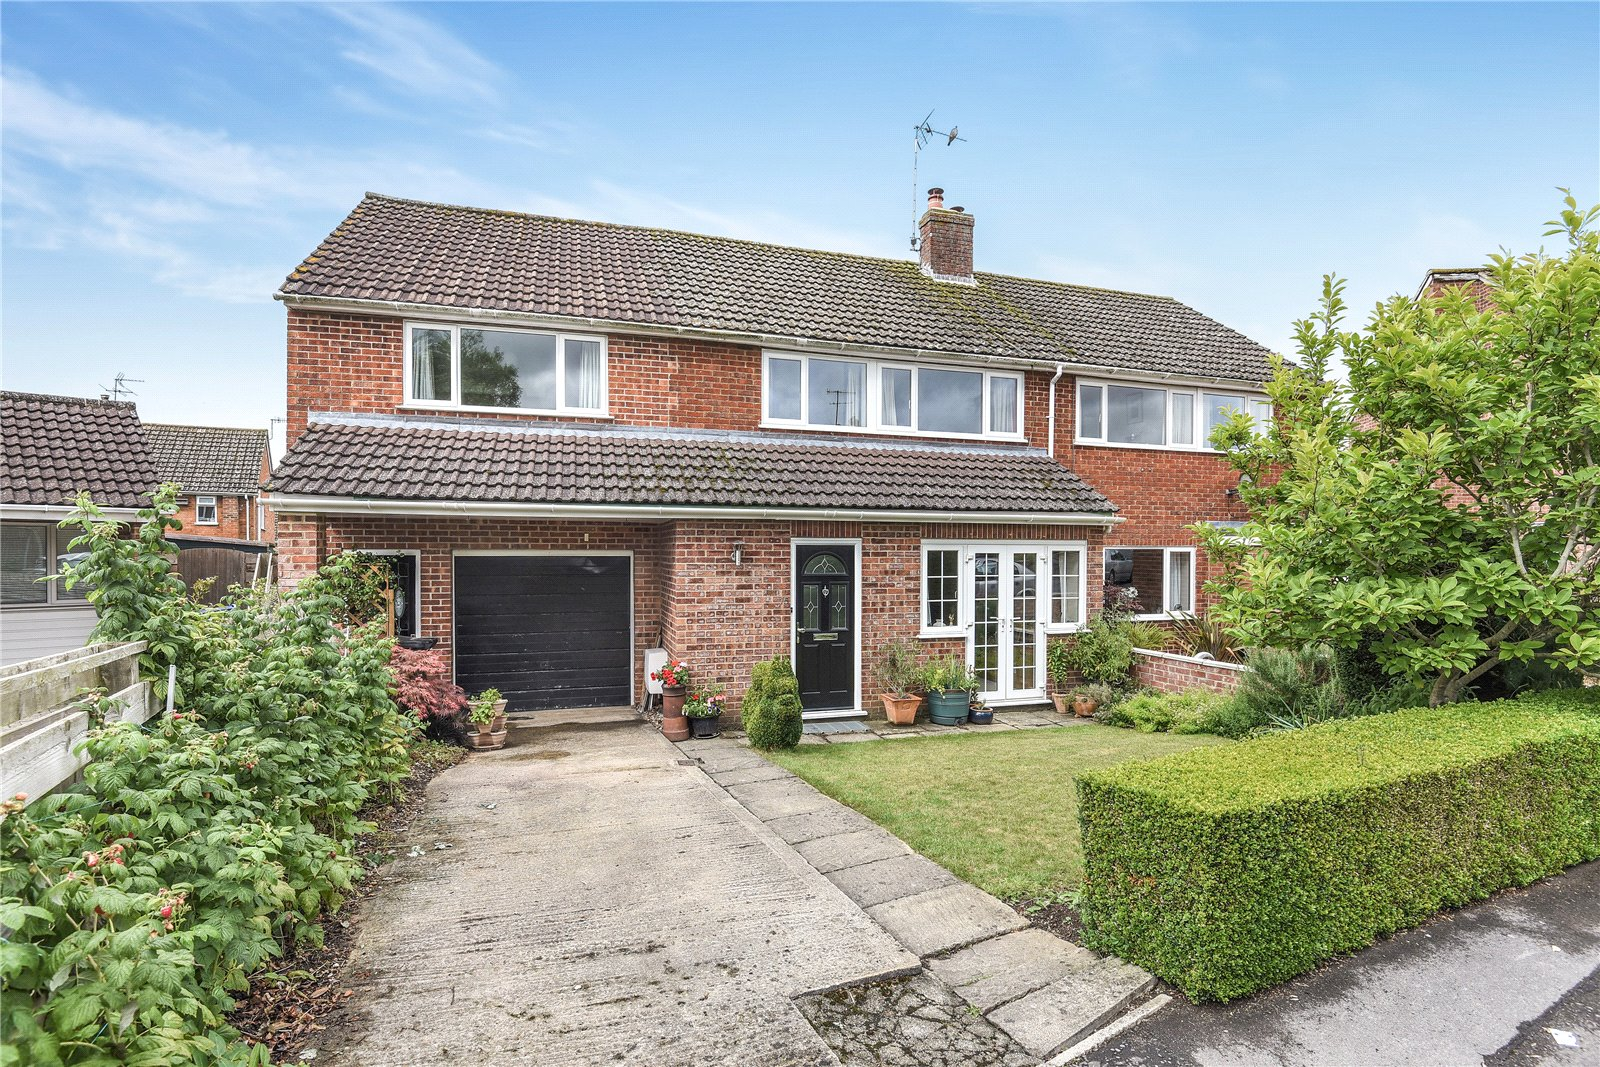 15 Barrow Close, Marlborough, Wiltshire